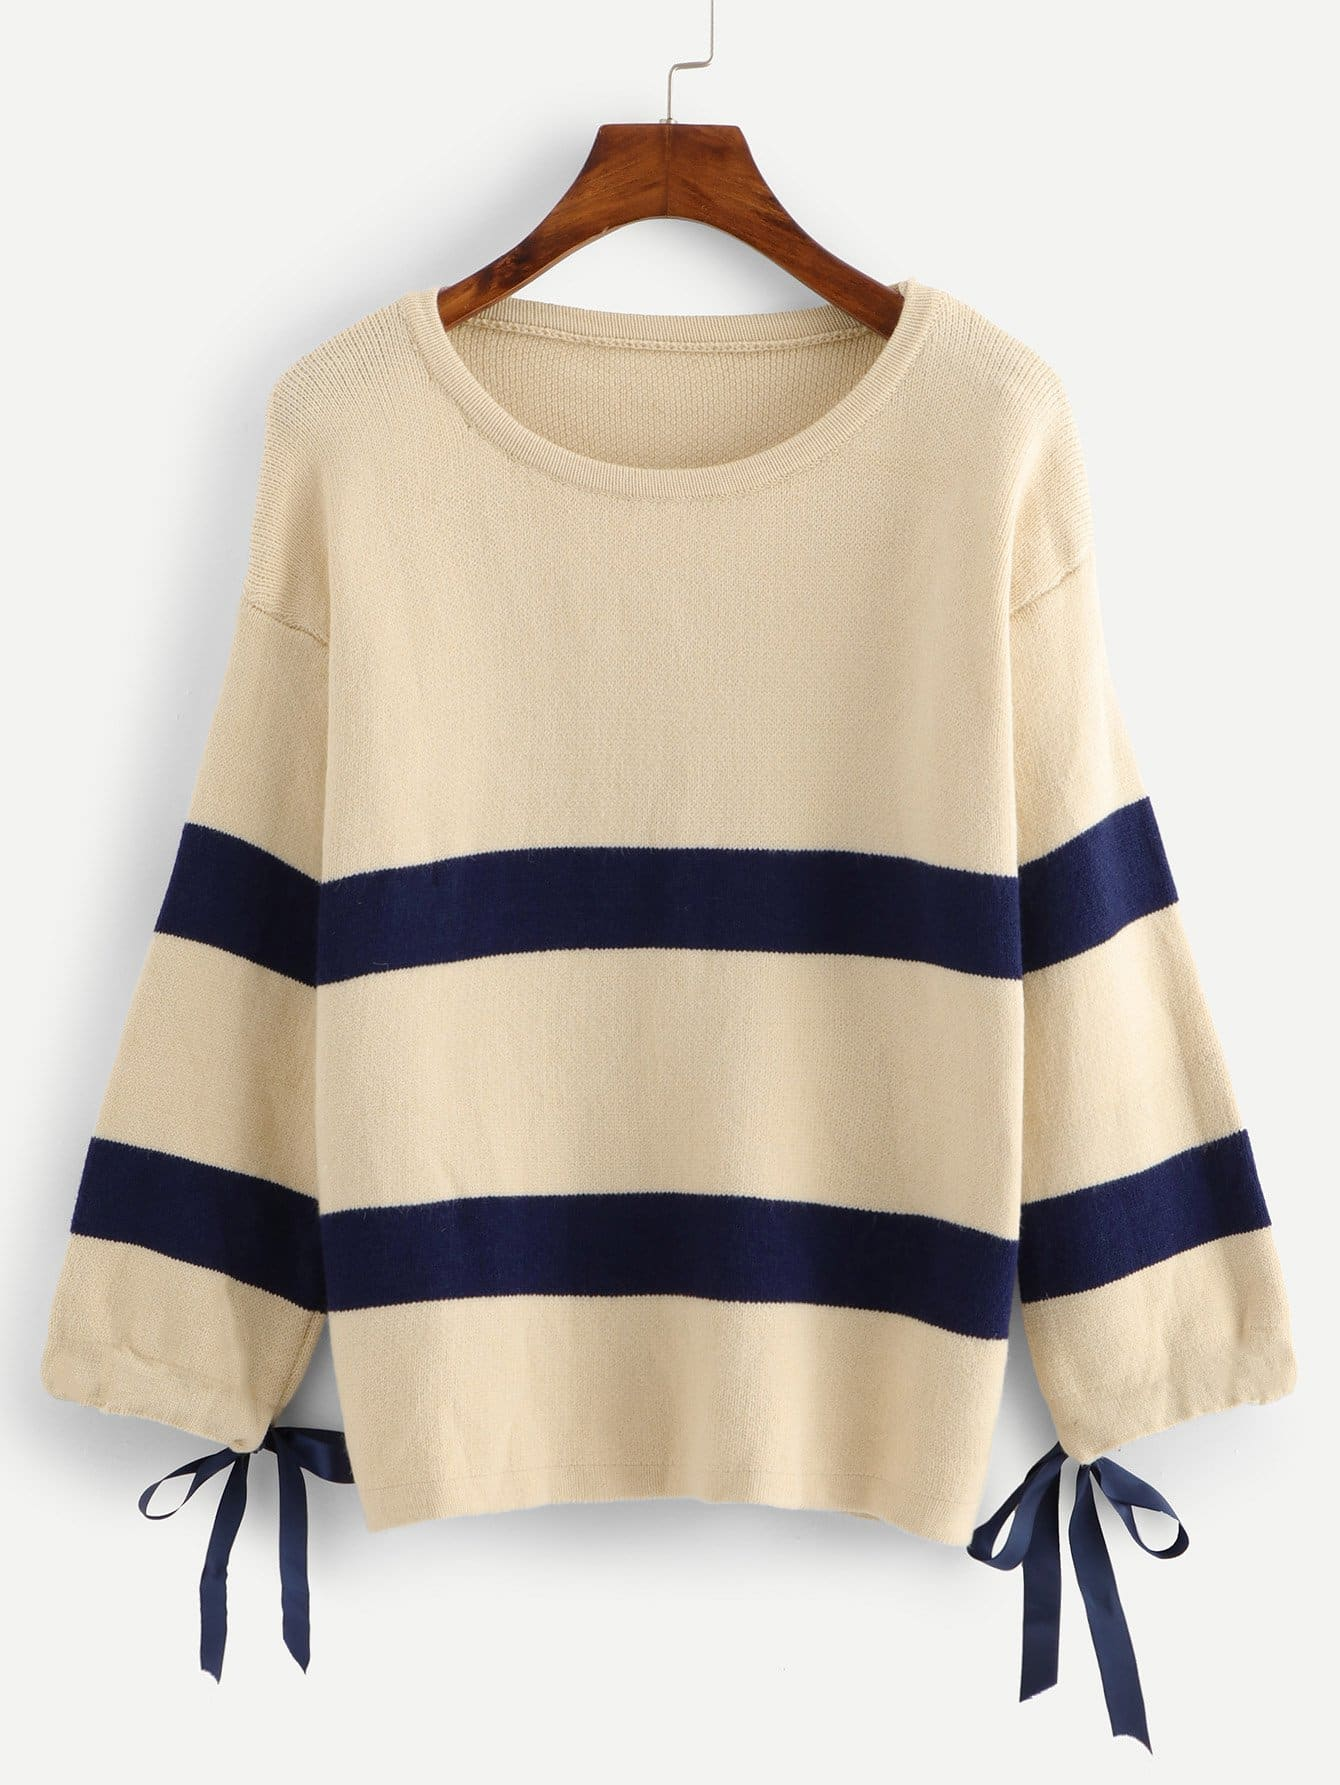 Knot Cuff Striped Sweater